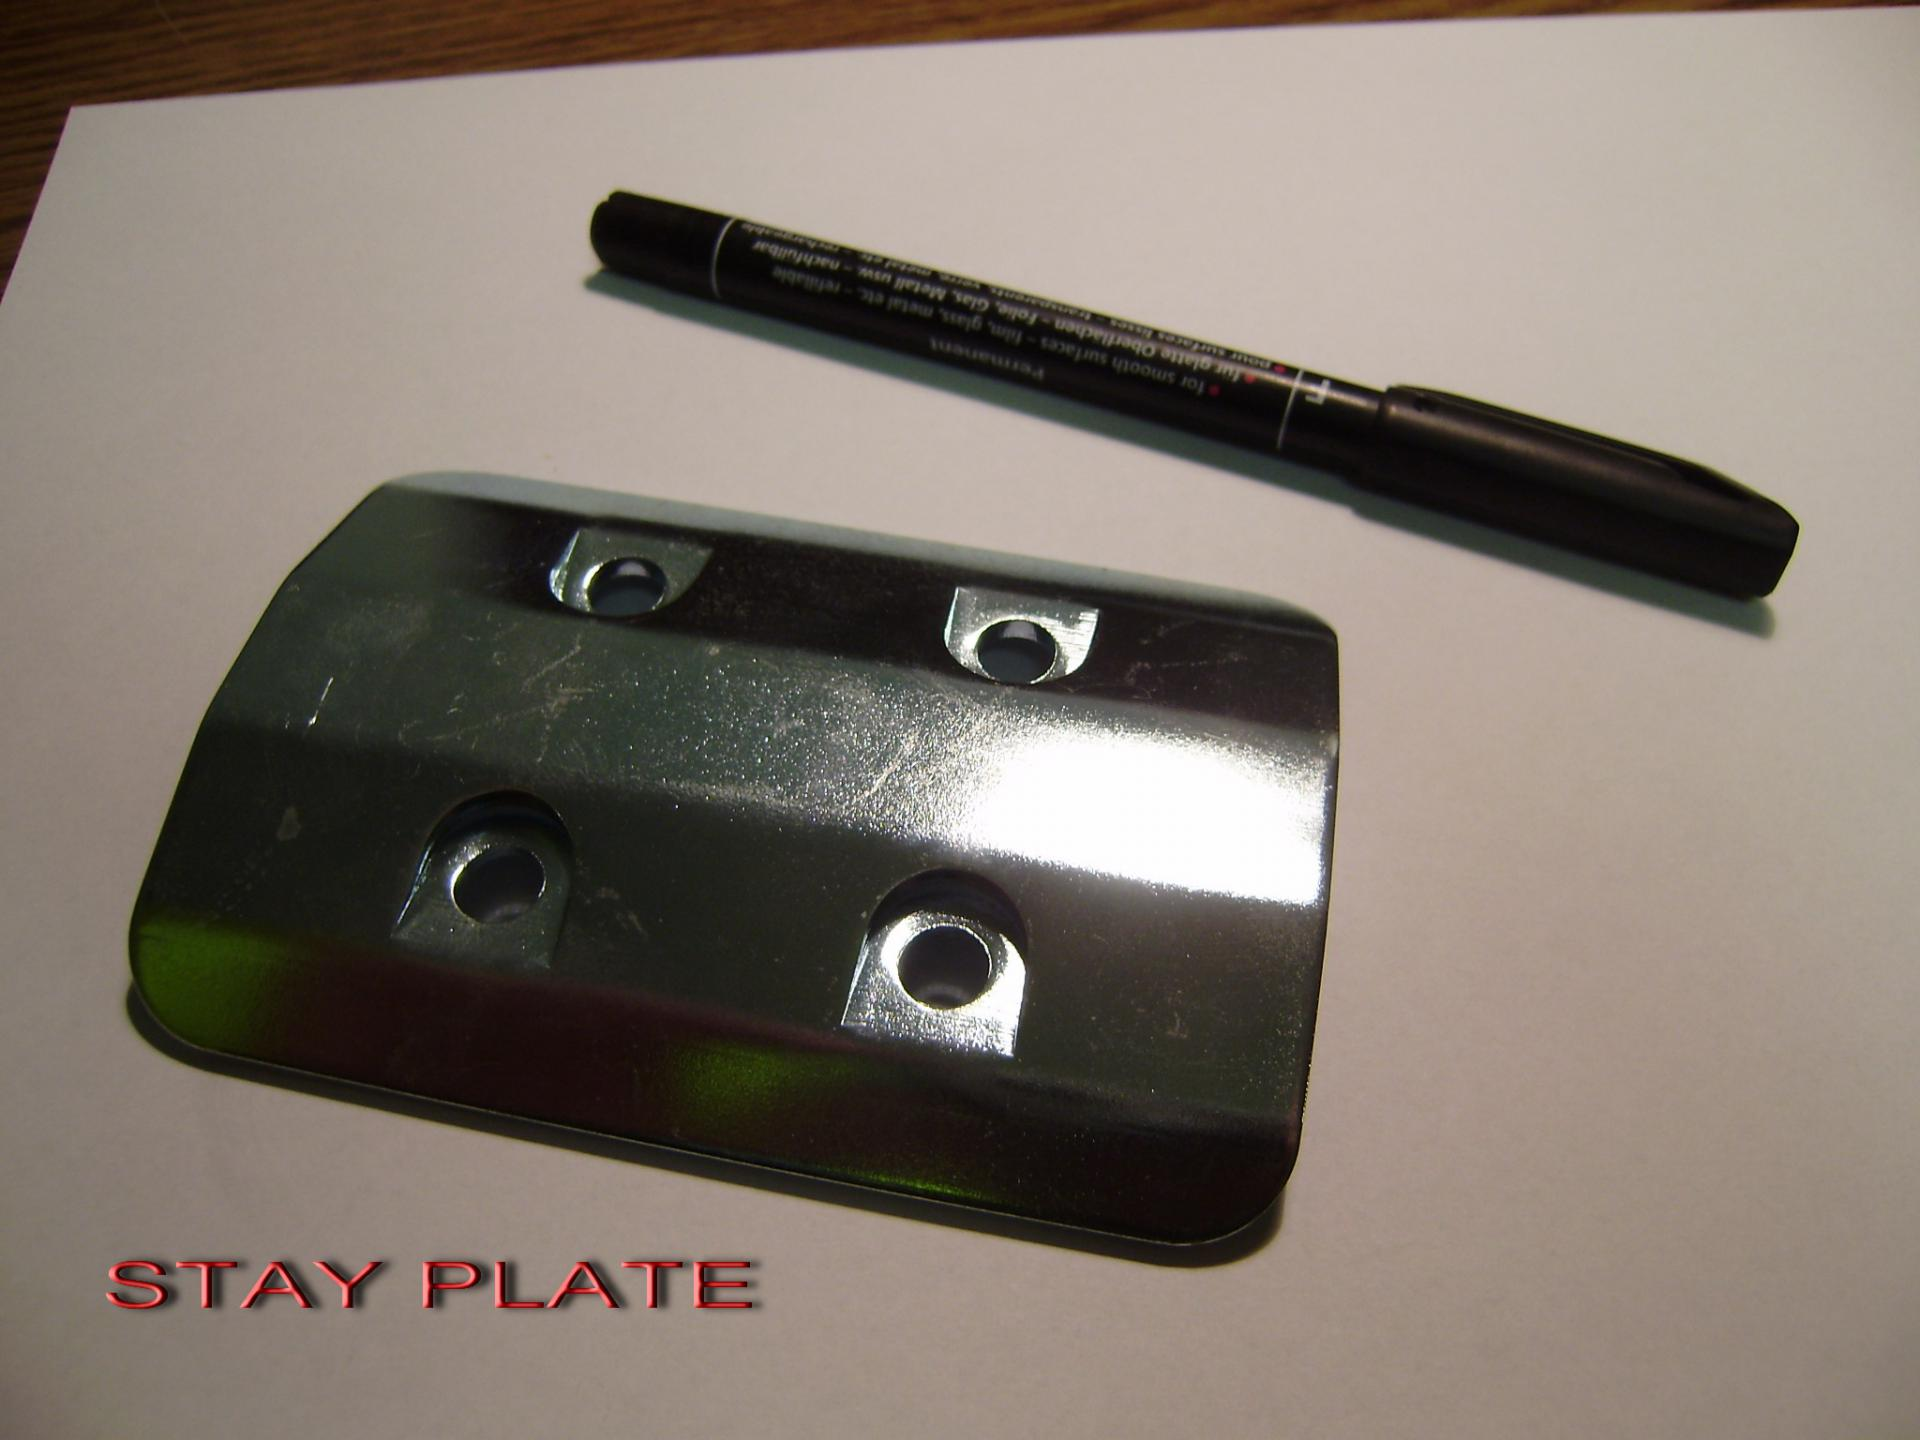 Stay plate